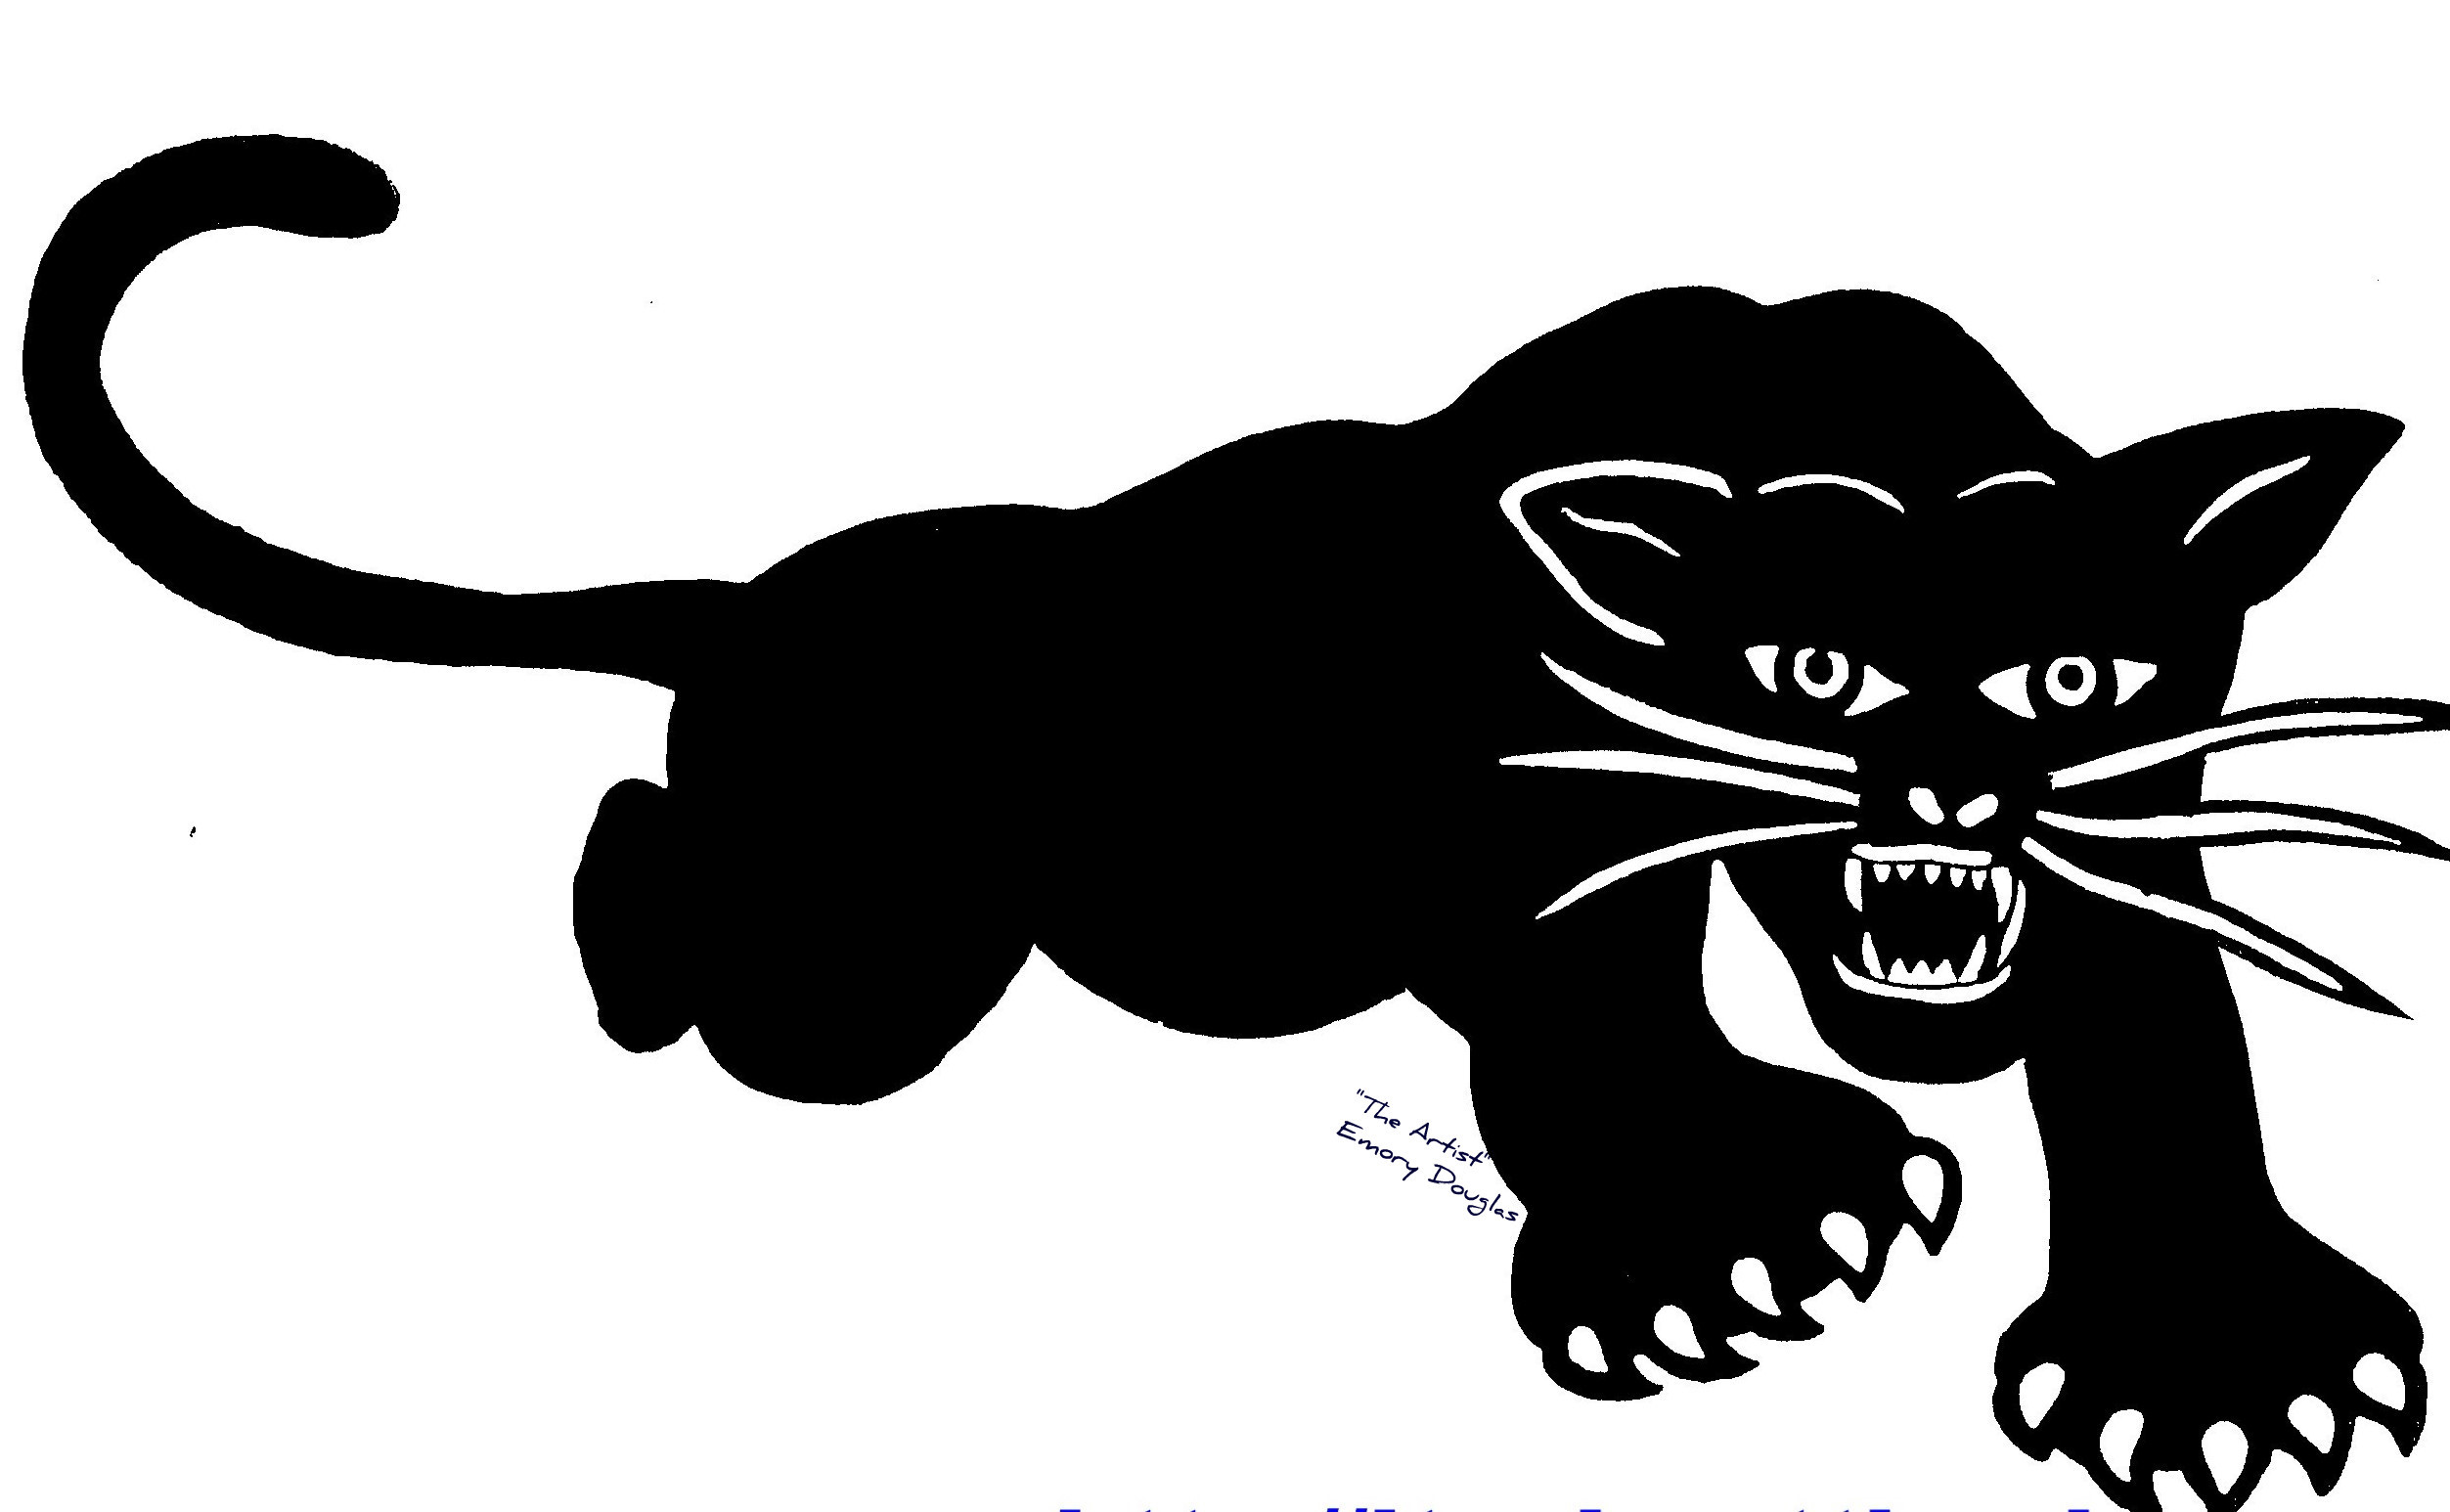 Black panther party logo tattoo - photo#17